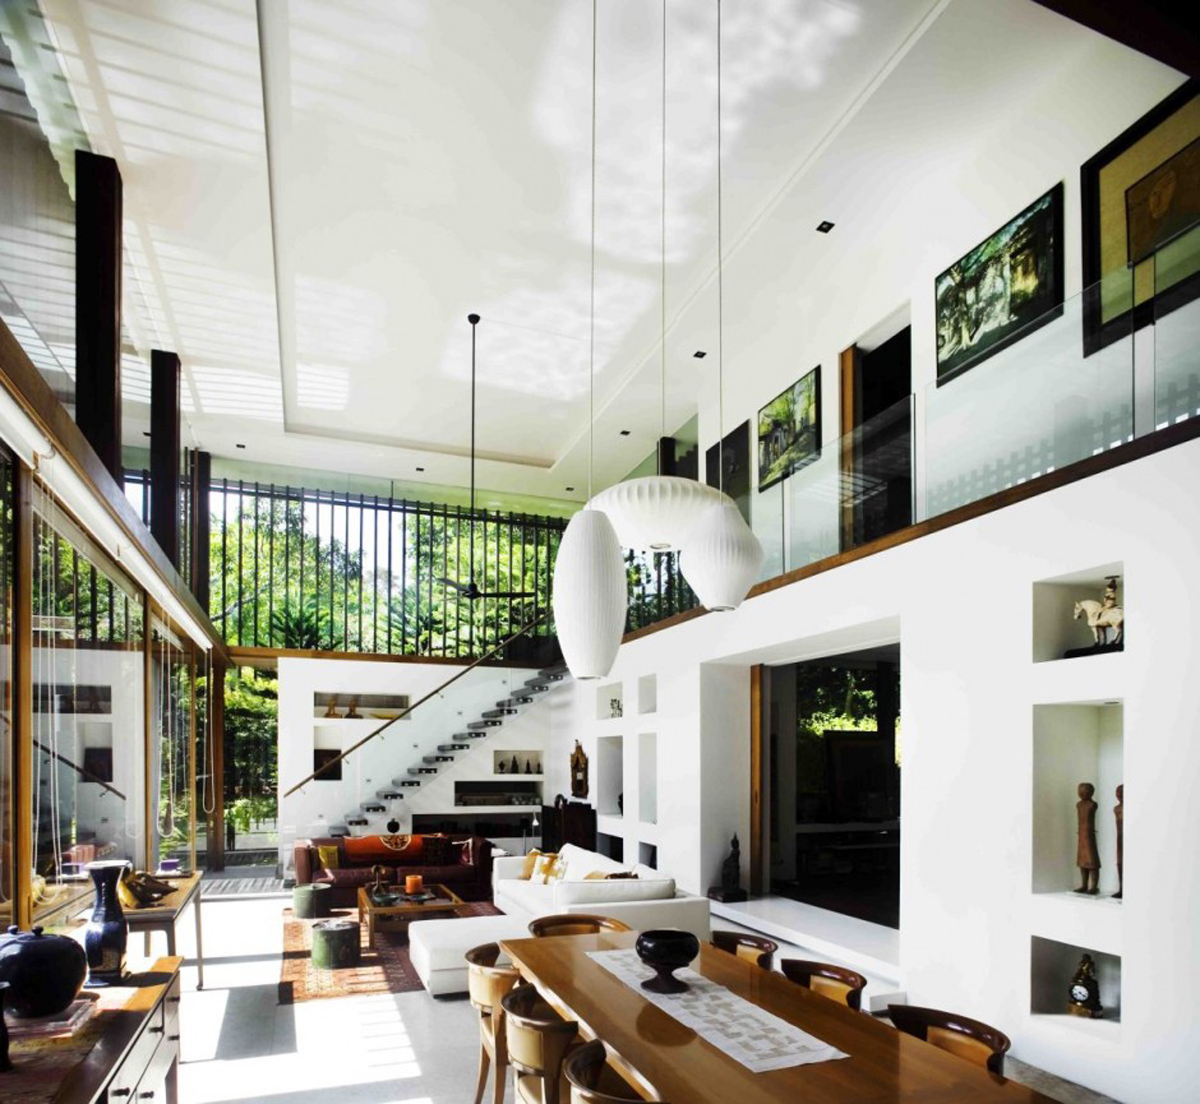 If you want to have the dream house design that has the wonderful garden  views, this modern house design in Singapore can be used as your  inspiration.